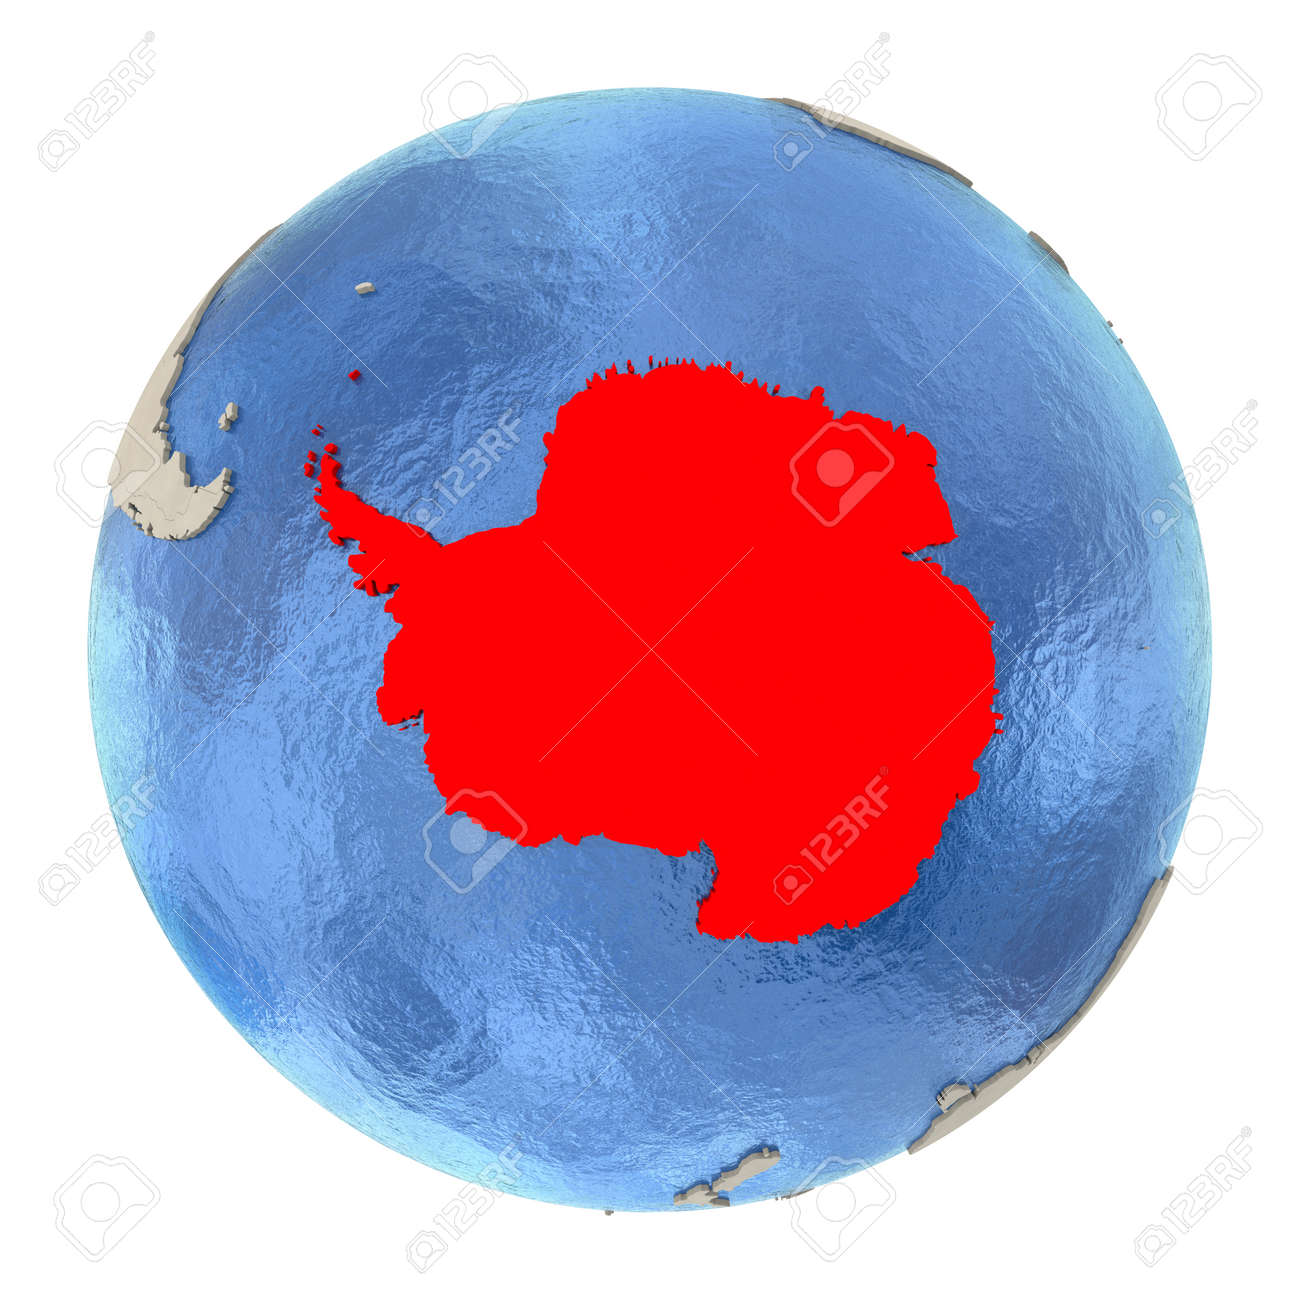 Map of Antarctica on political globe with watery oceans and embossed continents. 3D illustration isolated on white background. - 73353734